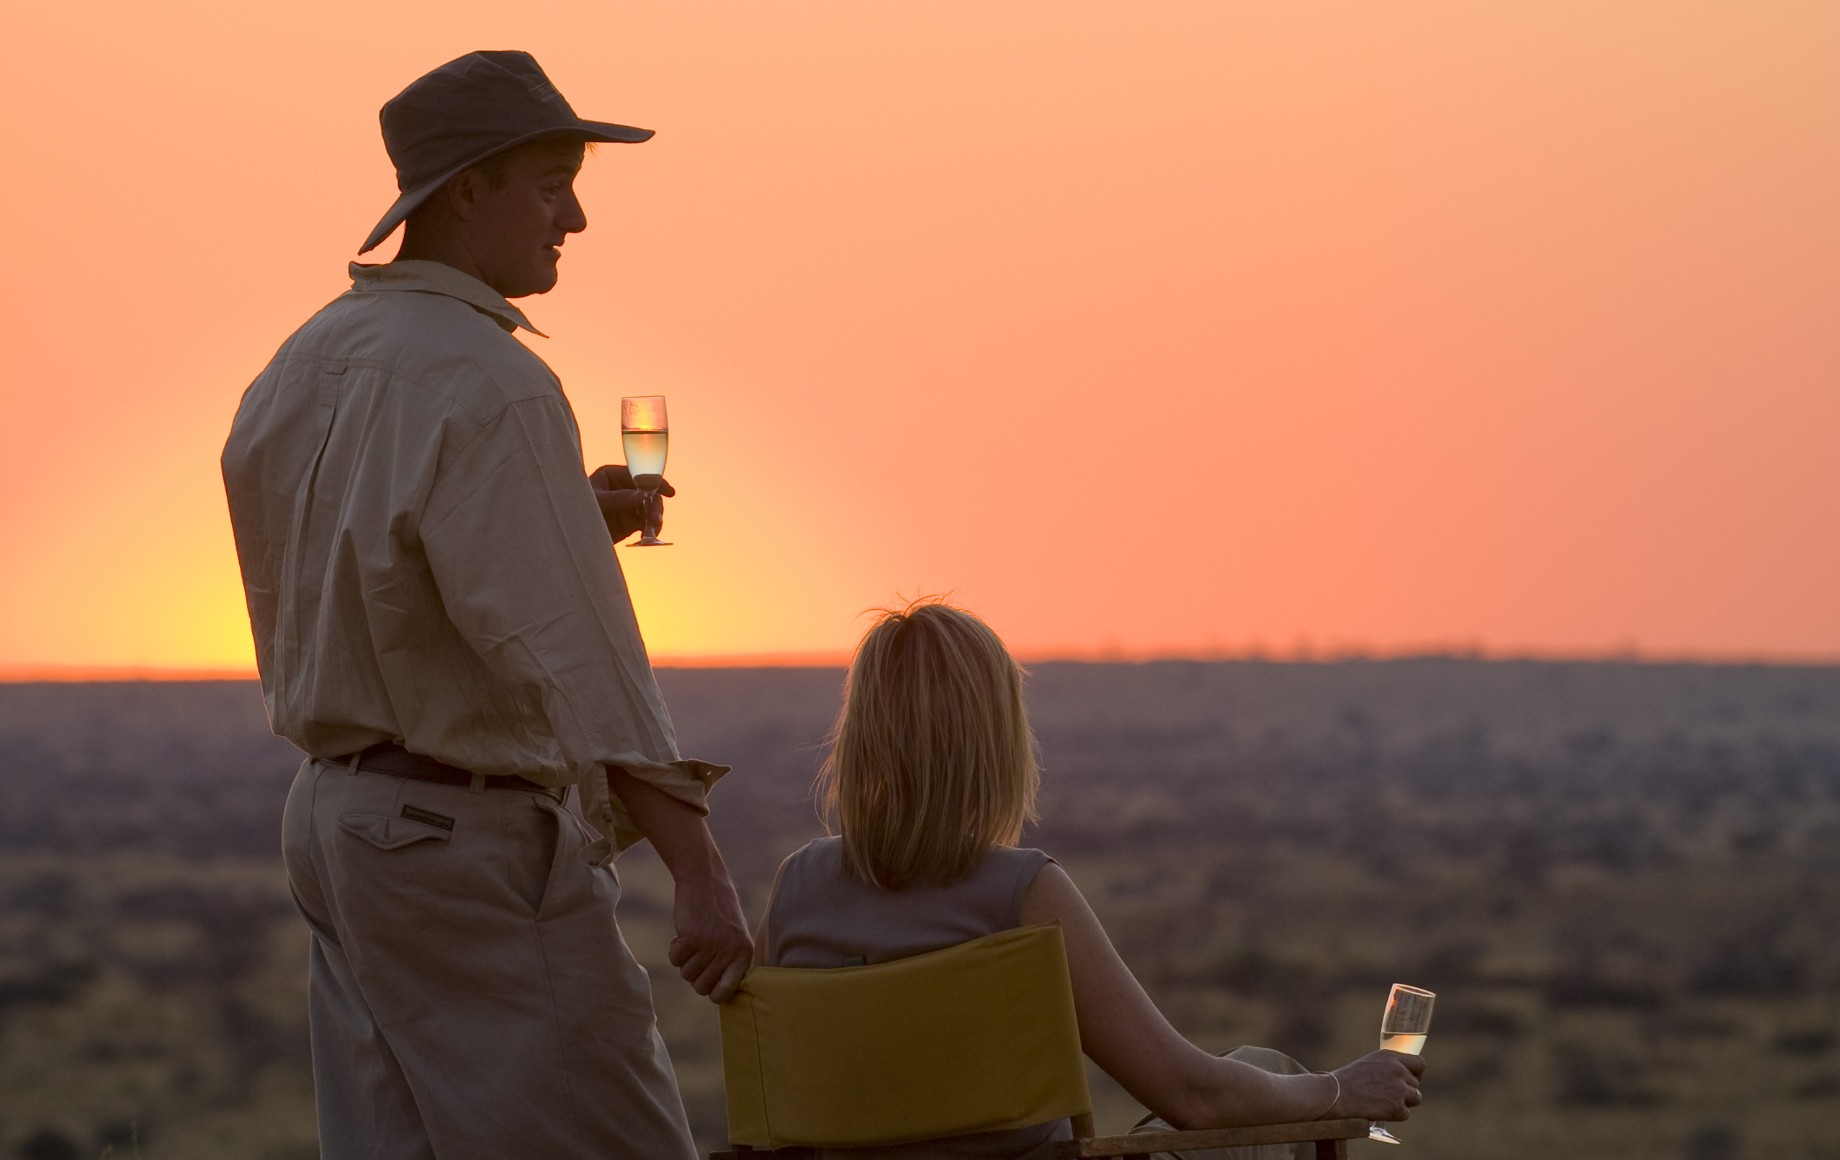 two people holding glasses of wine at sunset